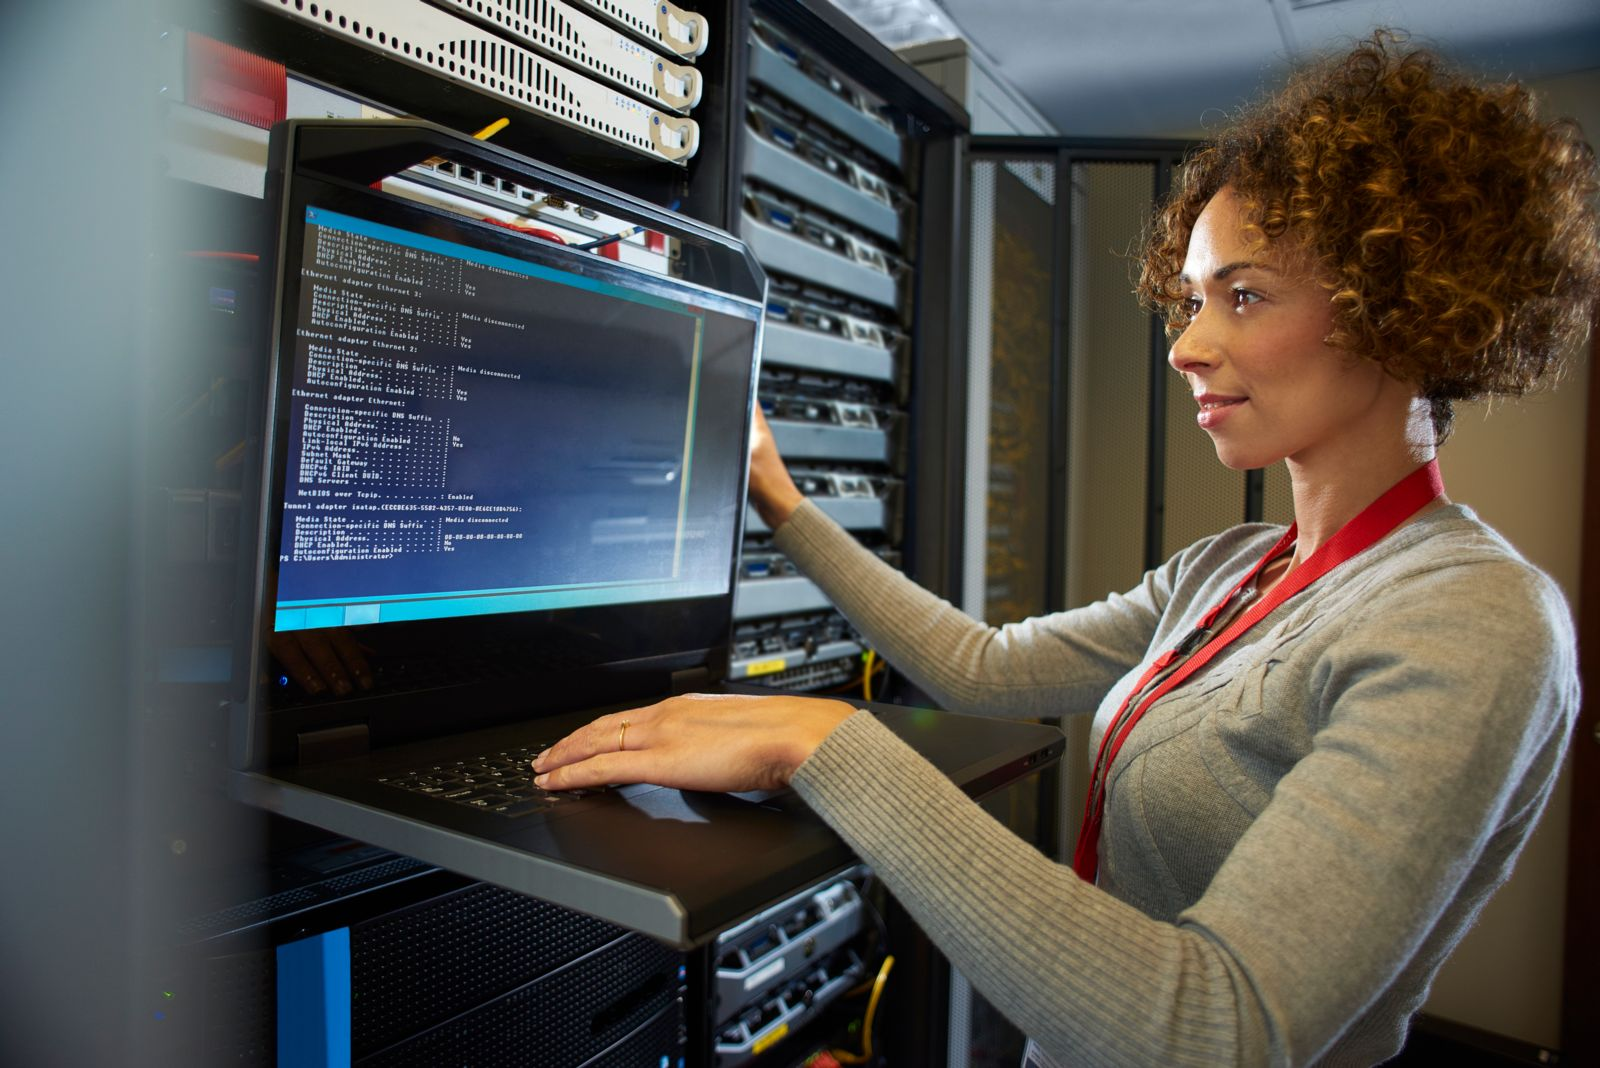 Female student working on computer server